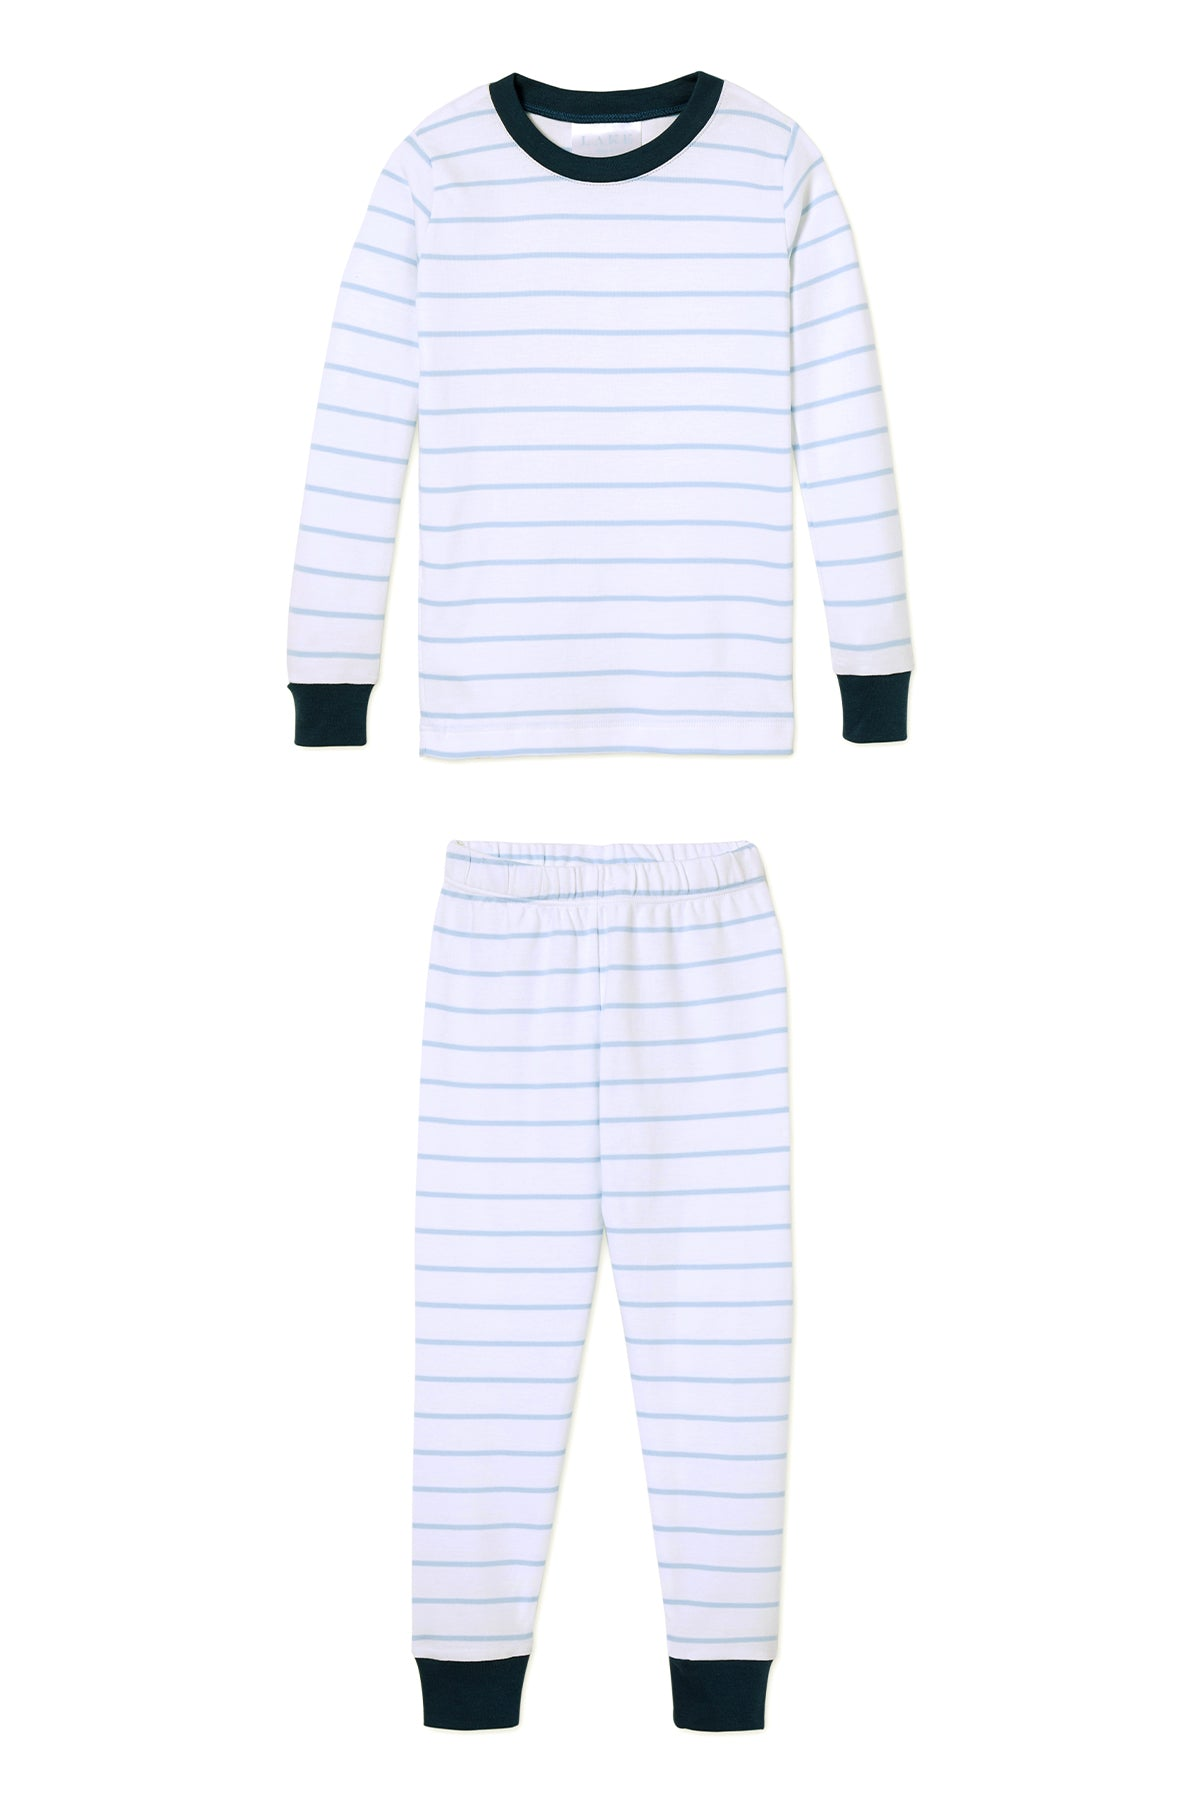 Kids Long-Long Set in Marine